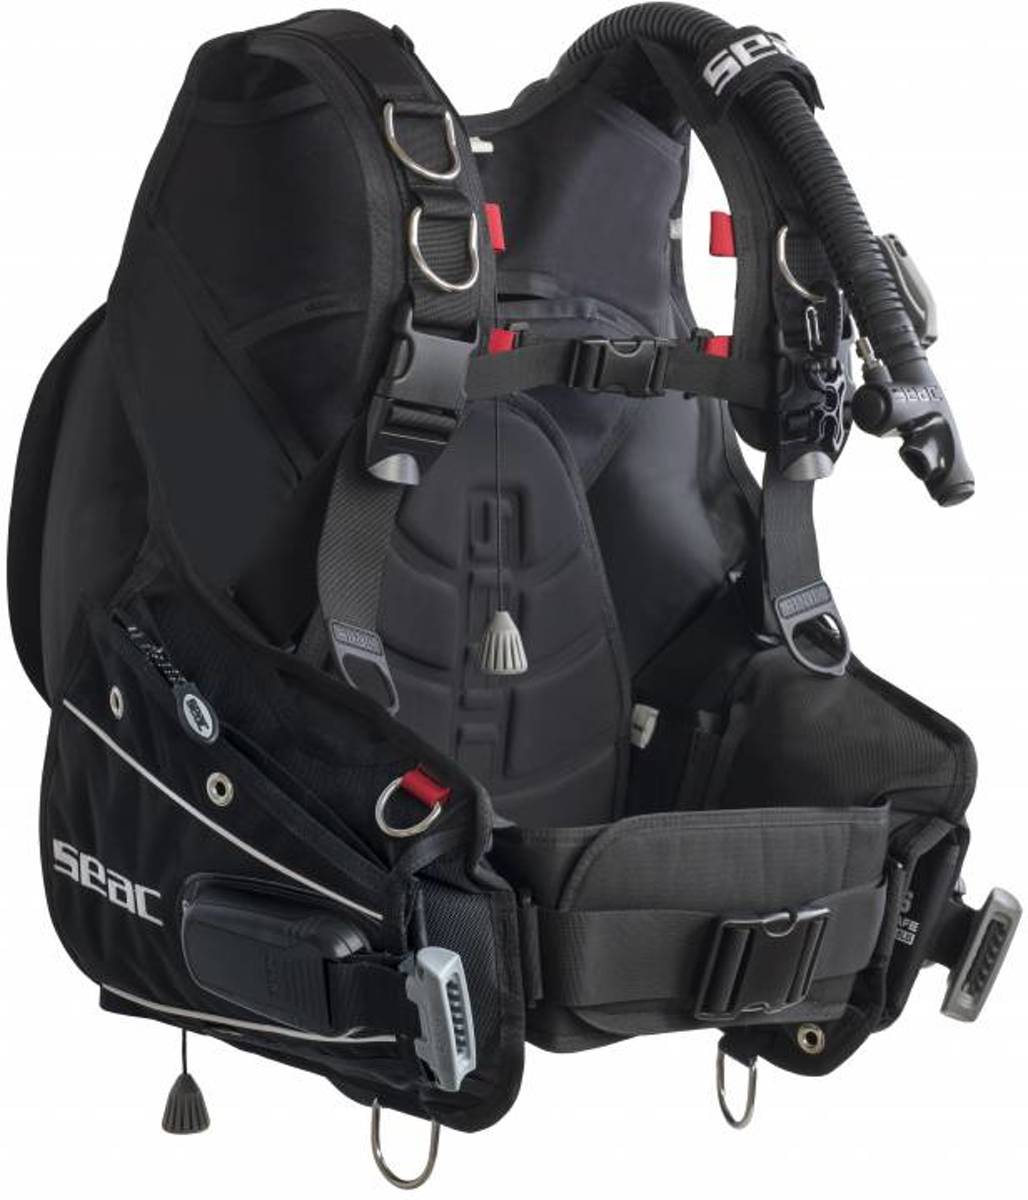 Seac Pro 2000 HD Limited Edition Trimvest - maat XL